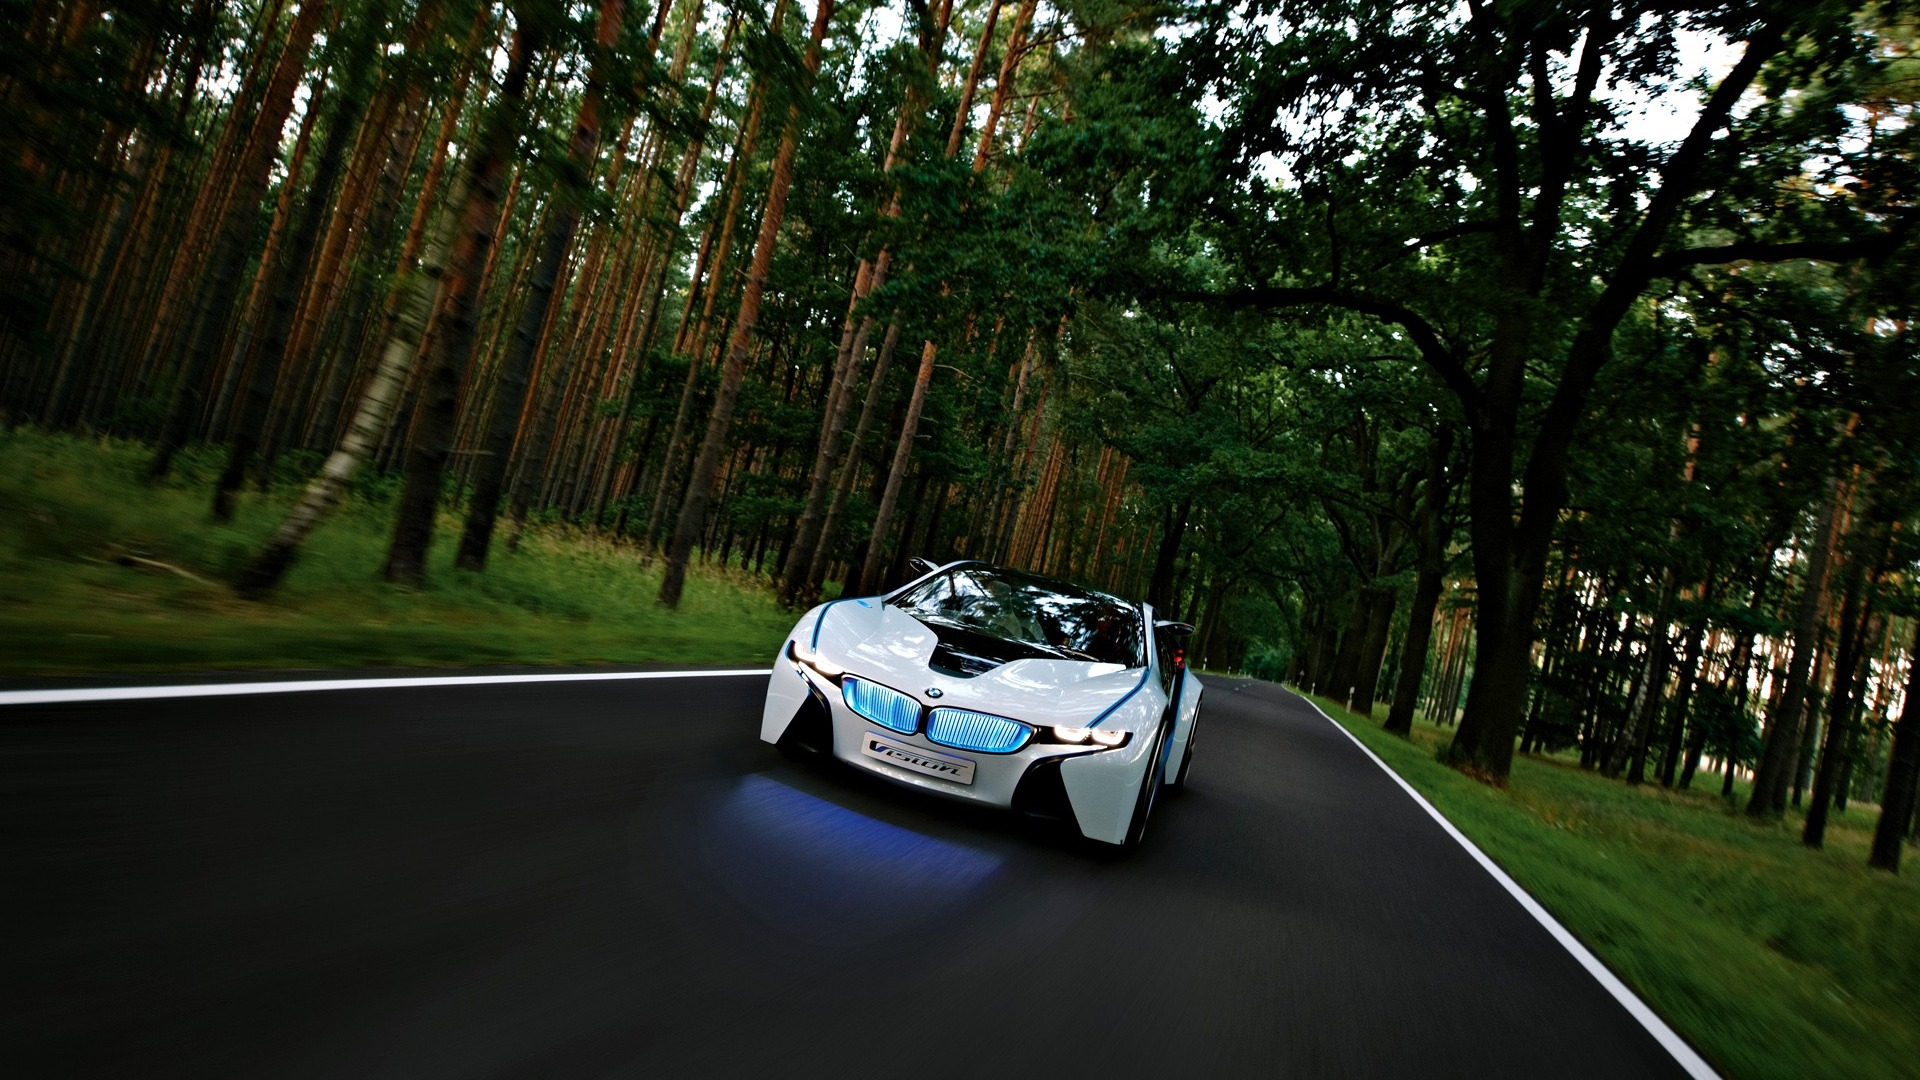 BMW Car 1920X1080 Pixels Full HD Wallpapers Collection   Tech Bug 1920x1080